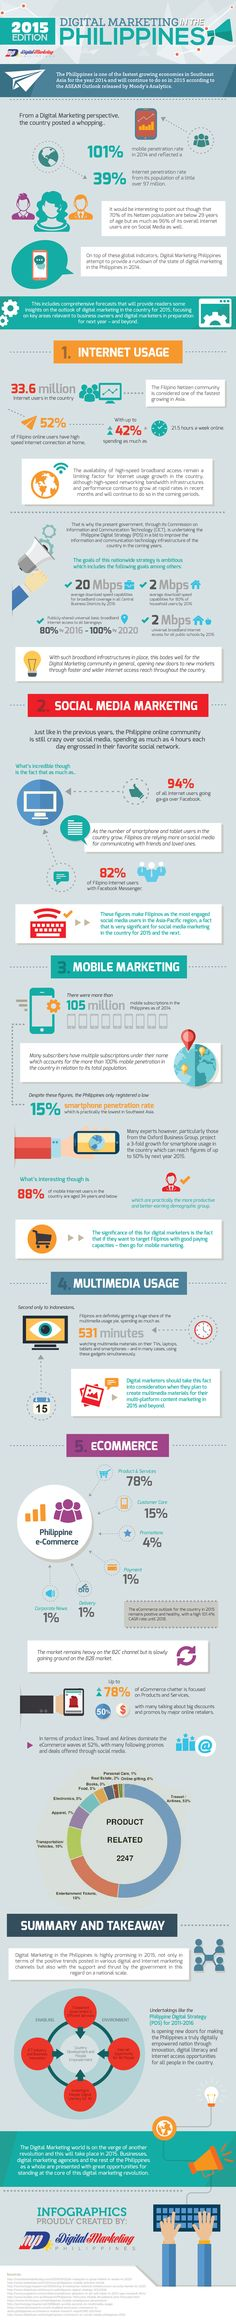 DIGITAL MARKETING IN THE PHILIPPINES – 2015 EDITION (INFOGRAPHIC)